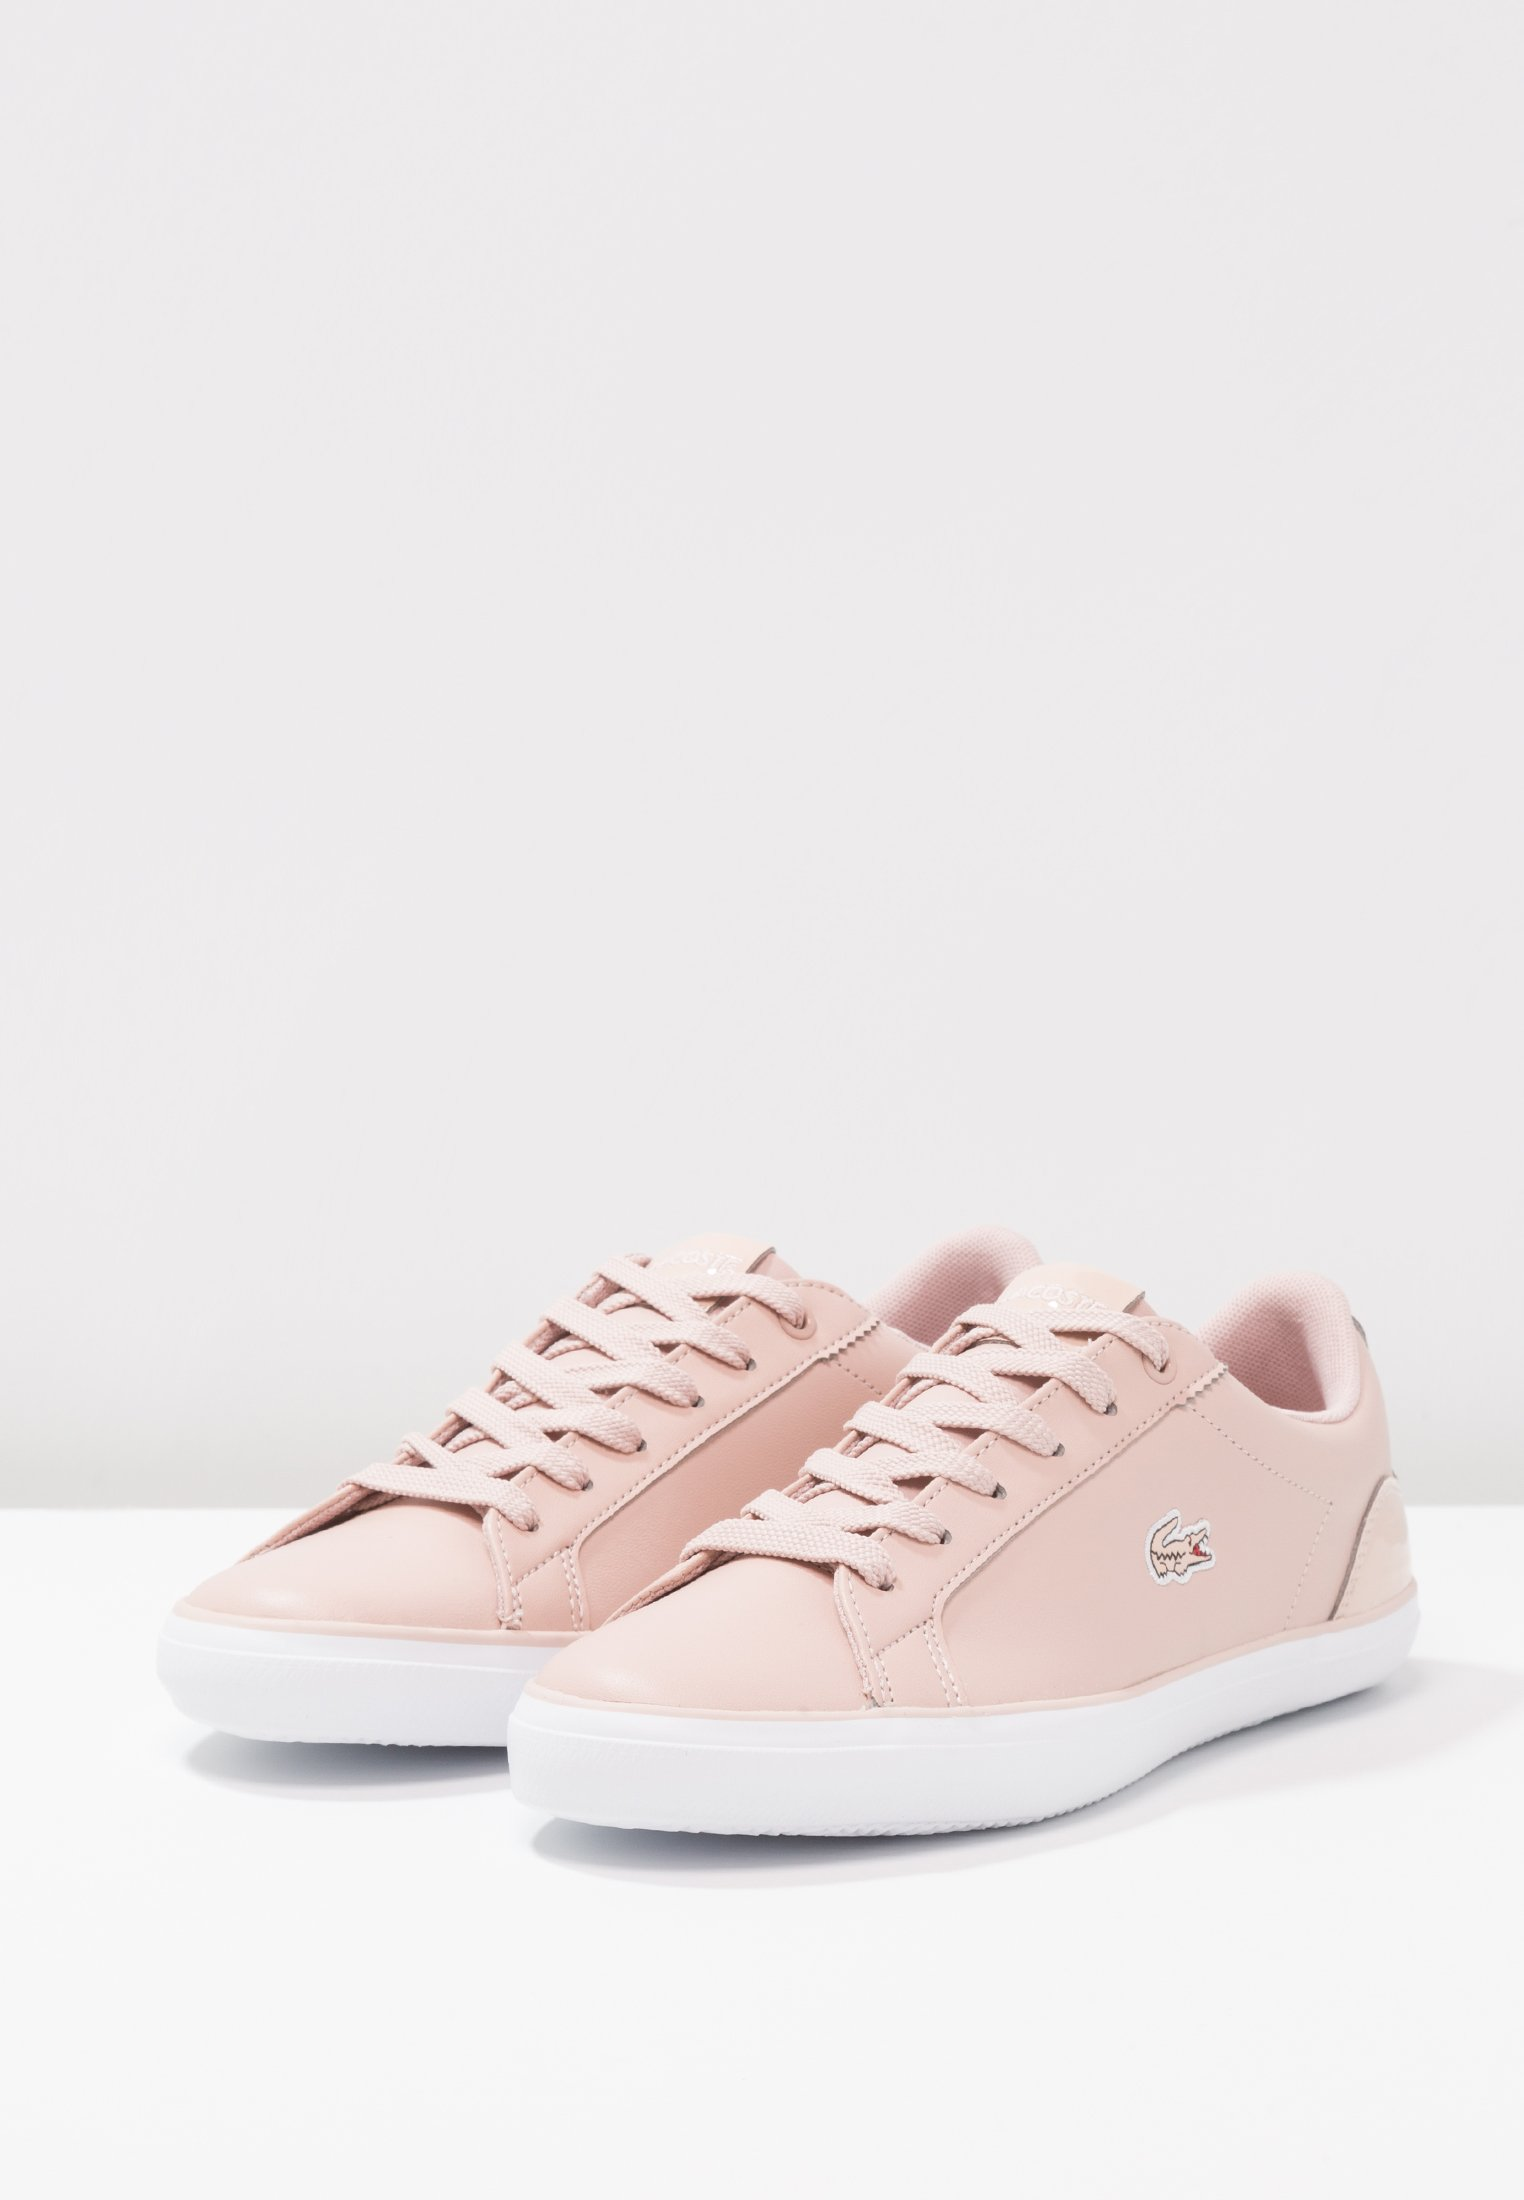 Lacoste Basses Lerond CawBaskets Lacoste Natural Lerond OZXuwPikT